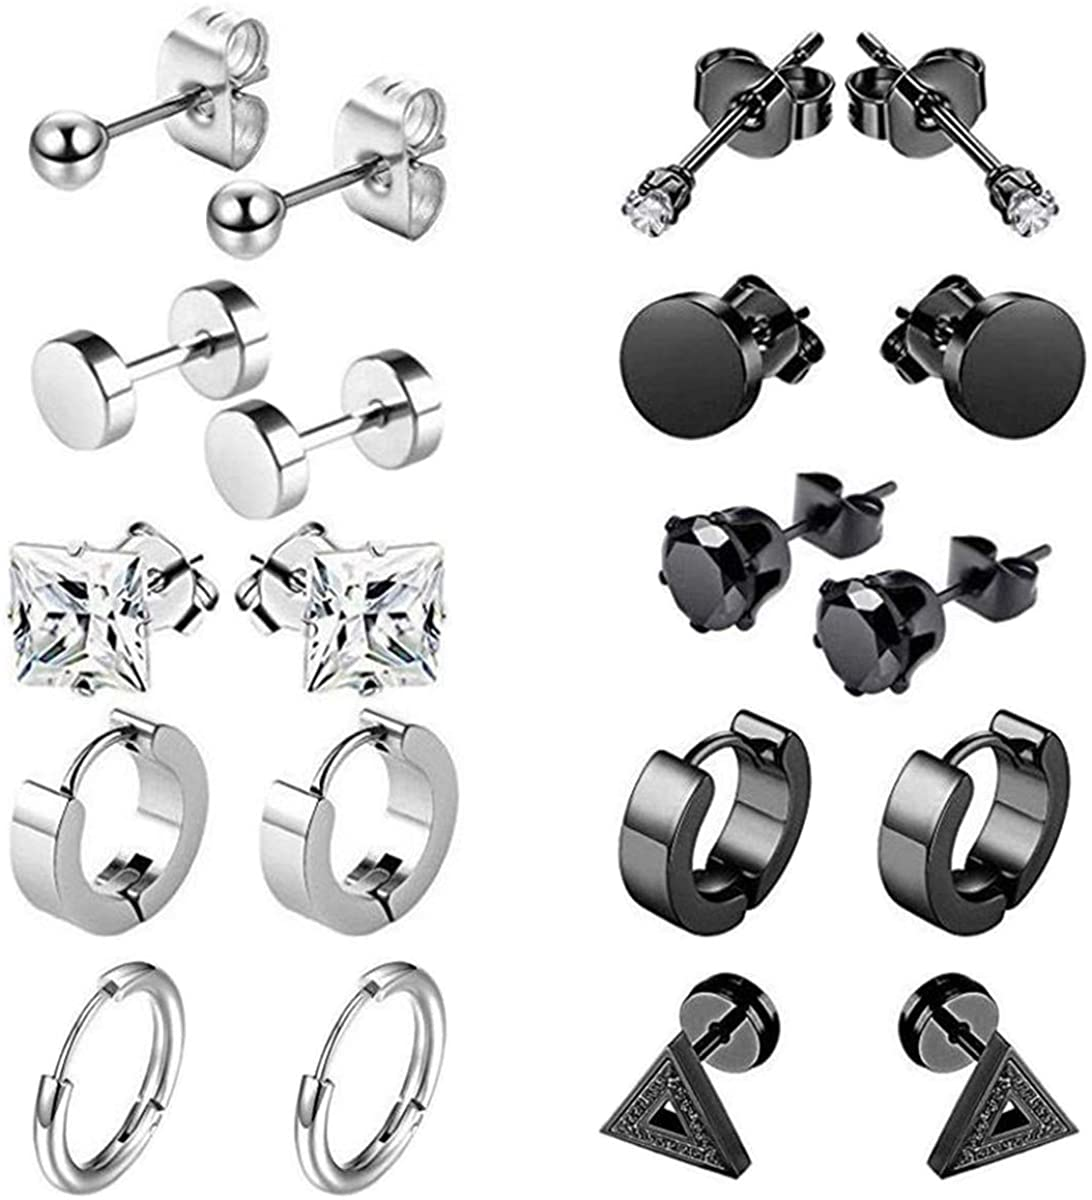 10 Pairs Stainless Steel Earrings for Men Tiny Ball Stud Earrings Cartilage Earrings Endless Earrings for Men women(20PCS,5 Pairs Black,5 Pairs Silver)